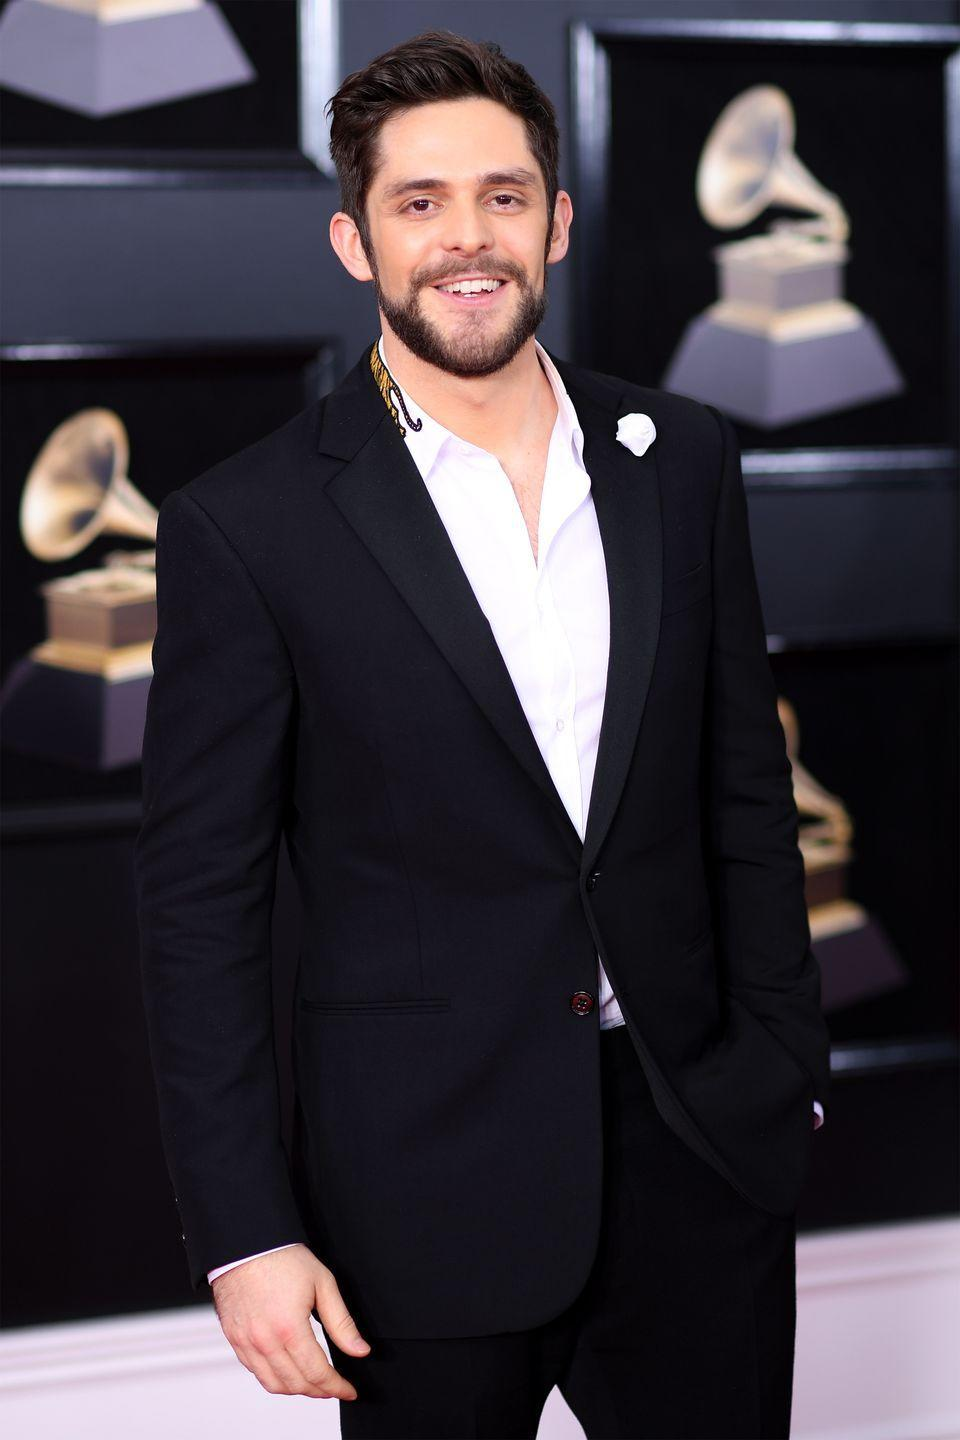 """<p>Thomas Rhett has risen to the top of the charts singing country love songs, but not long ago he was just a mere fraternity brother at Lipscomb University. While studying towards his degree, Rhett <a href=""""https://countryfancast.com/fraternities-and-sororities/"""" rel=""""nofollow noopener"""" target=""""_blank"""" data-ylk=""""slk:pledged Tau Phi"""" class=""""link rapid-noclick-resp"""">pledged Tau Phi</a>. </p>"""